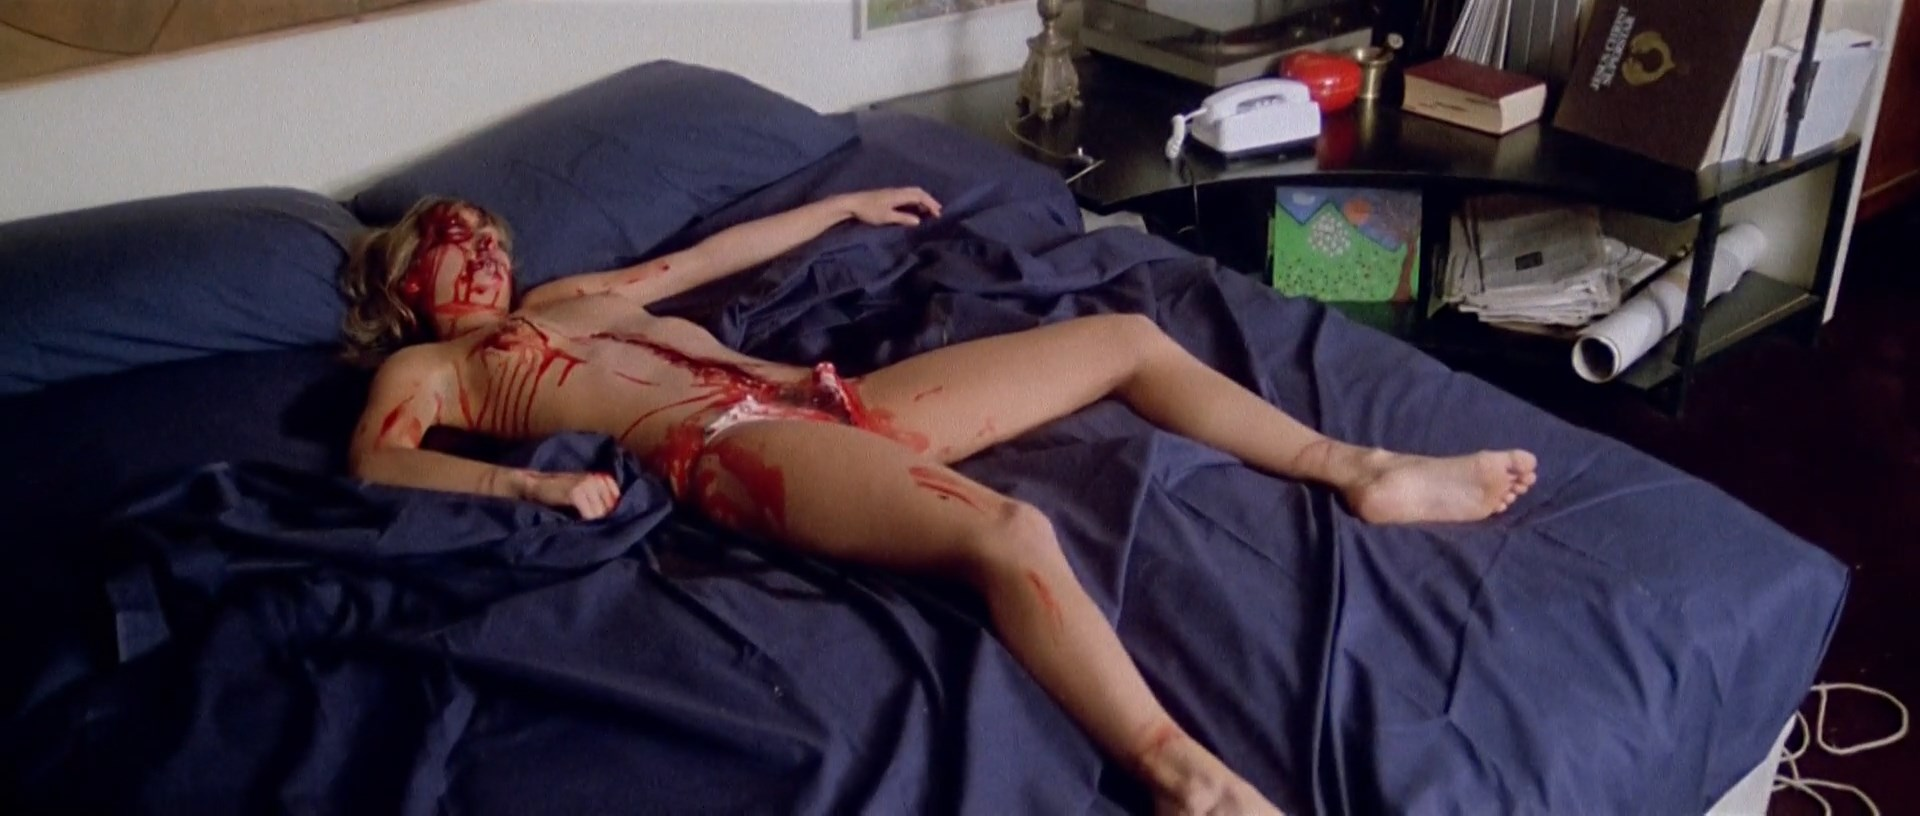 images-of-horror-movies-nude-teachers